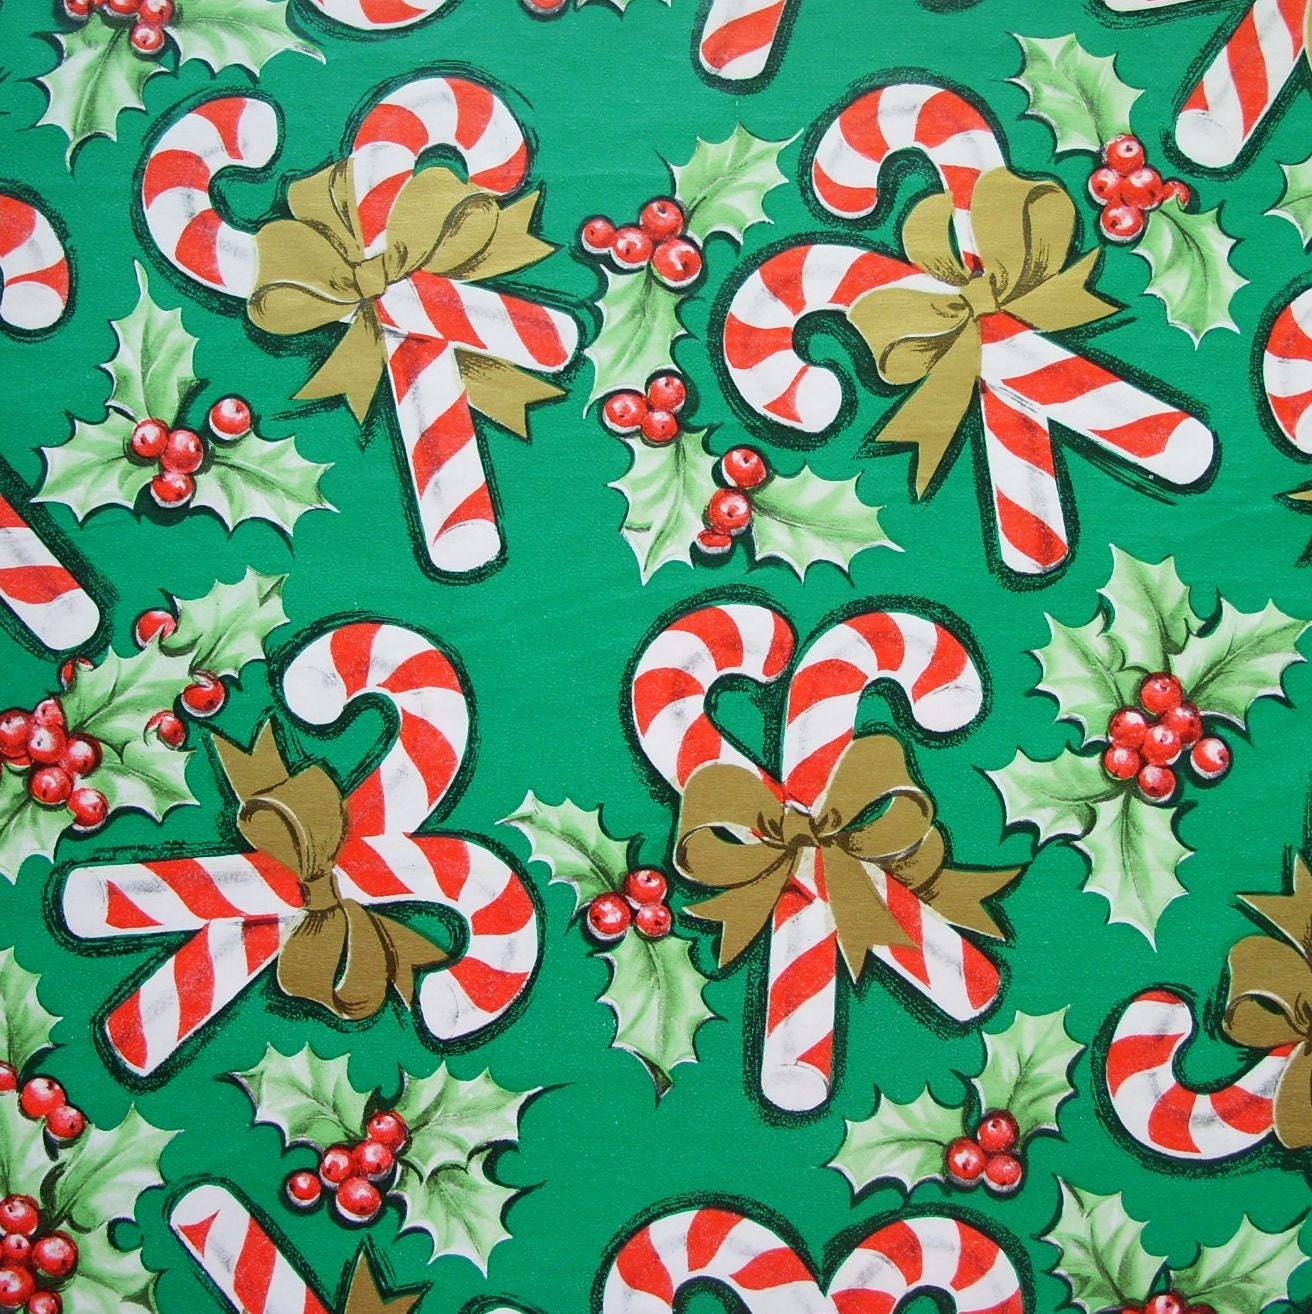 Pictures of Christmas Wrapping Paper Designs Hd - www.kidskunst.info